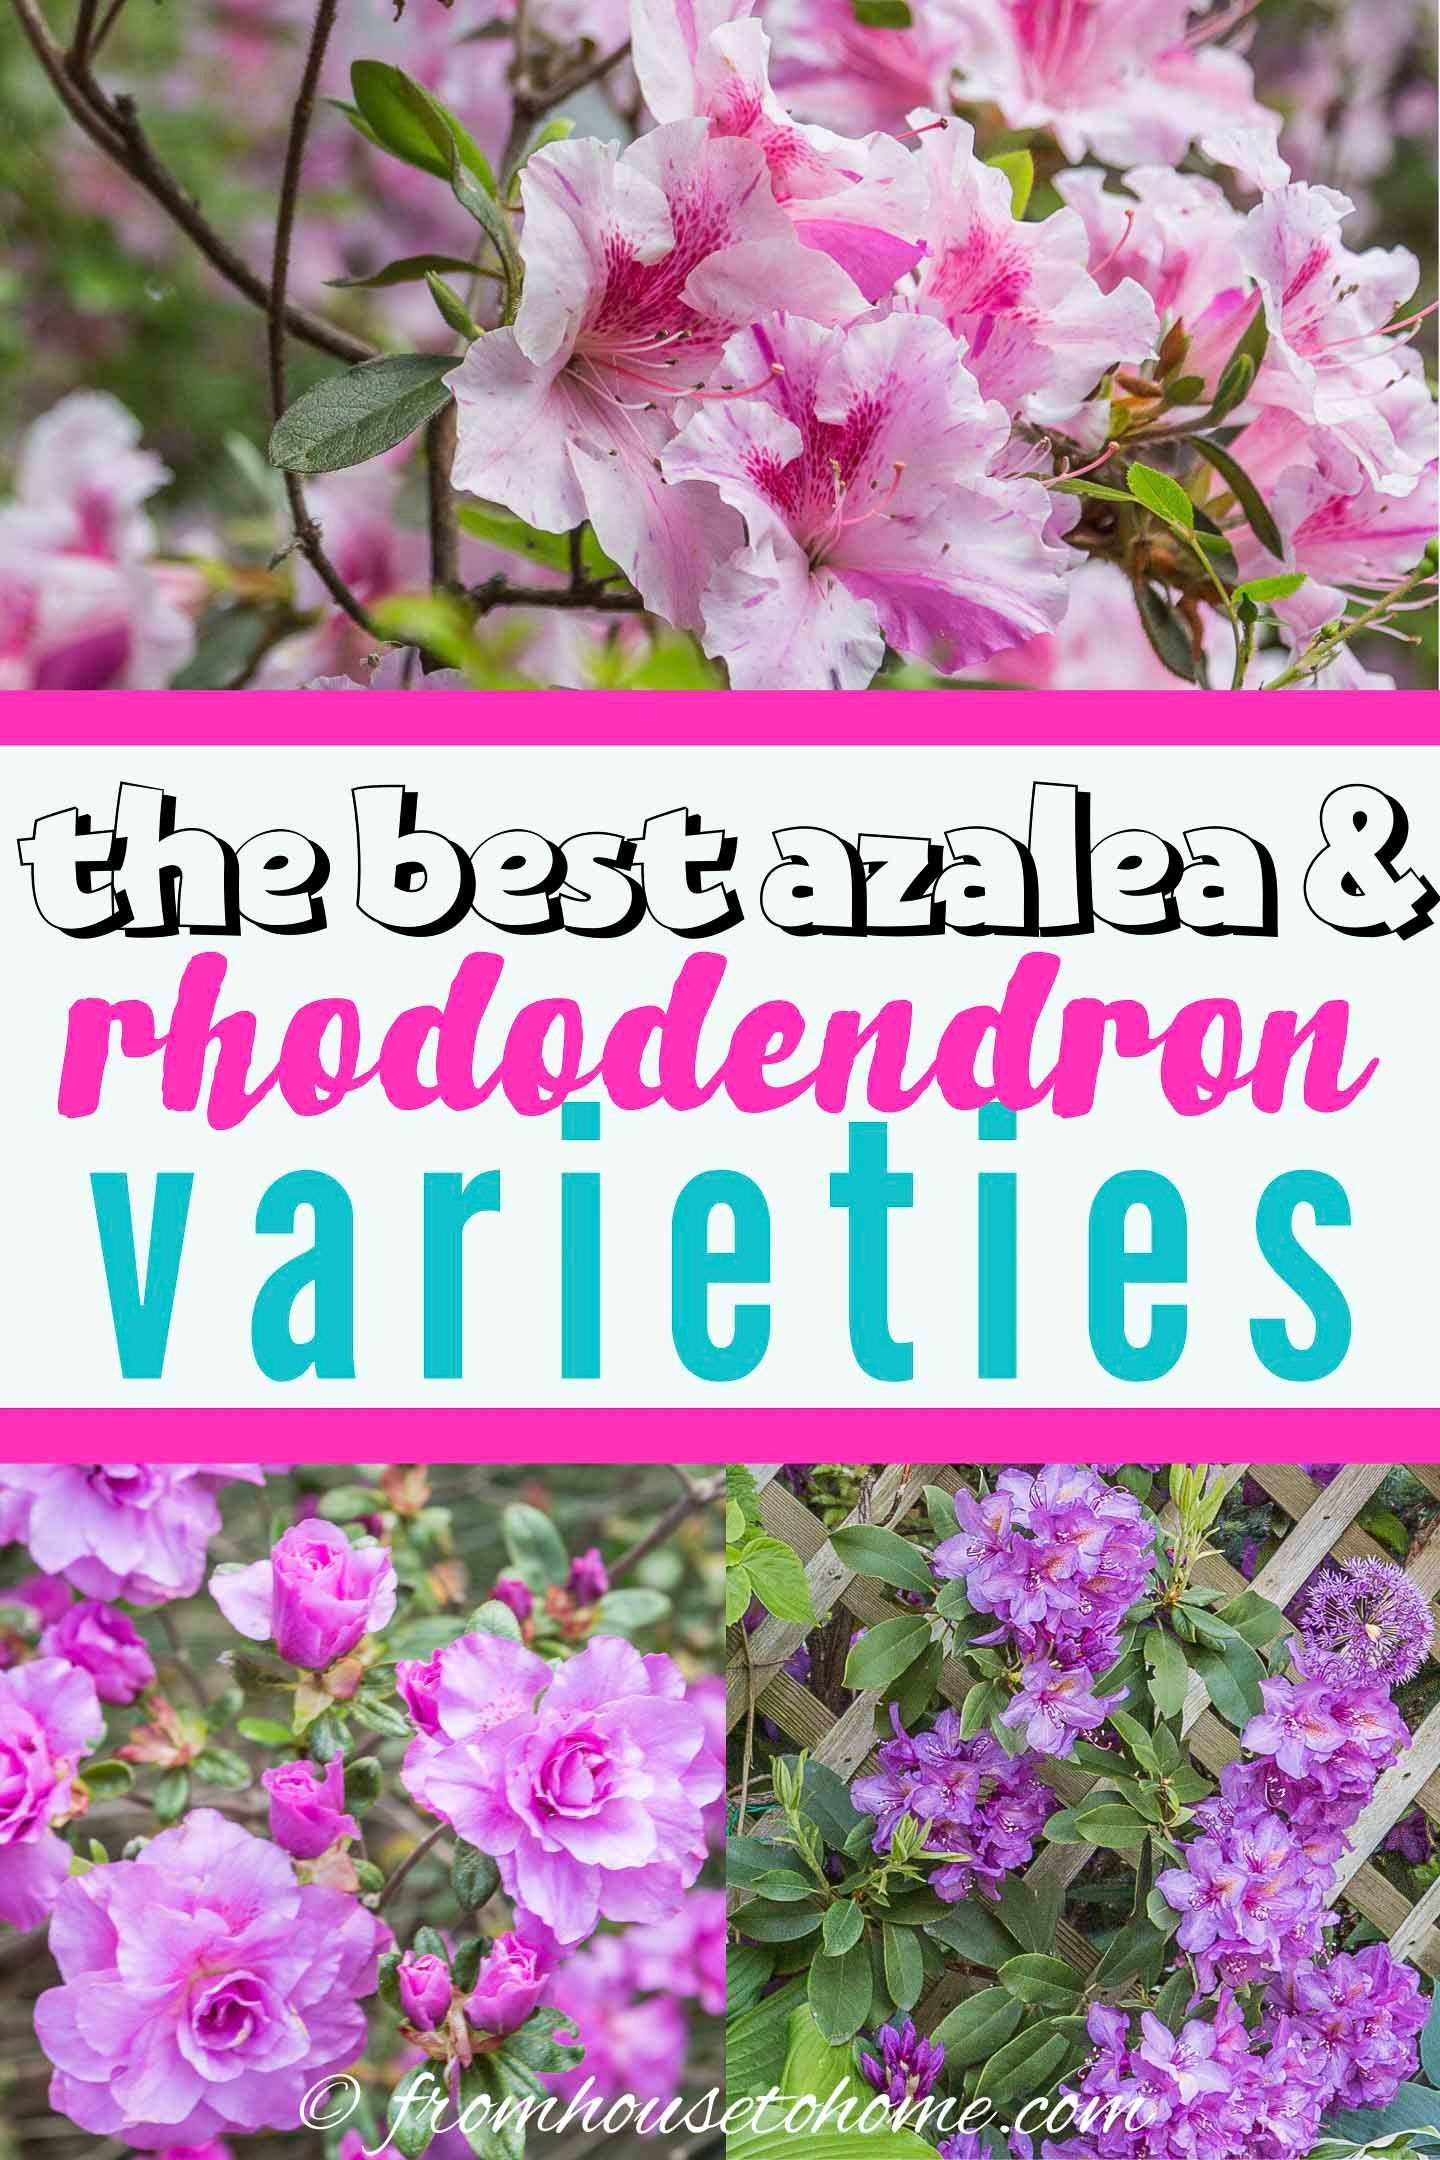 d1b92fc05637f75bfdc9bcf8fc0c261d - Best Gardens For Azaleas And Rhododendrons